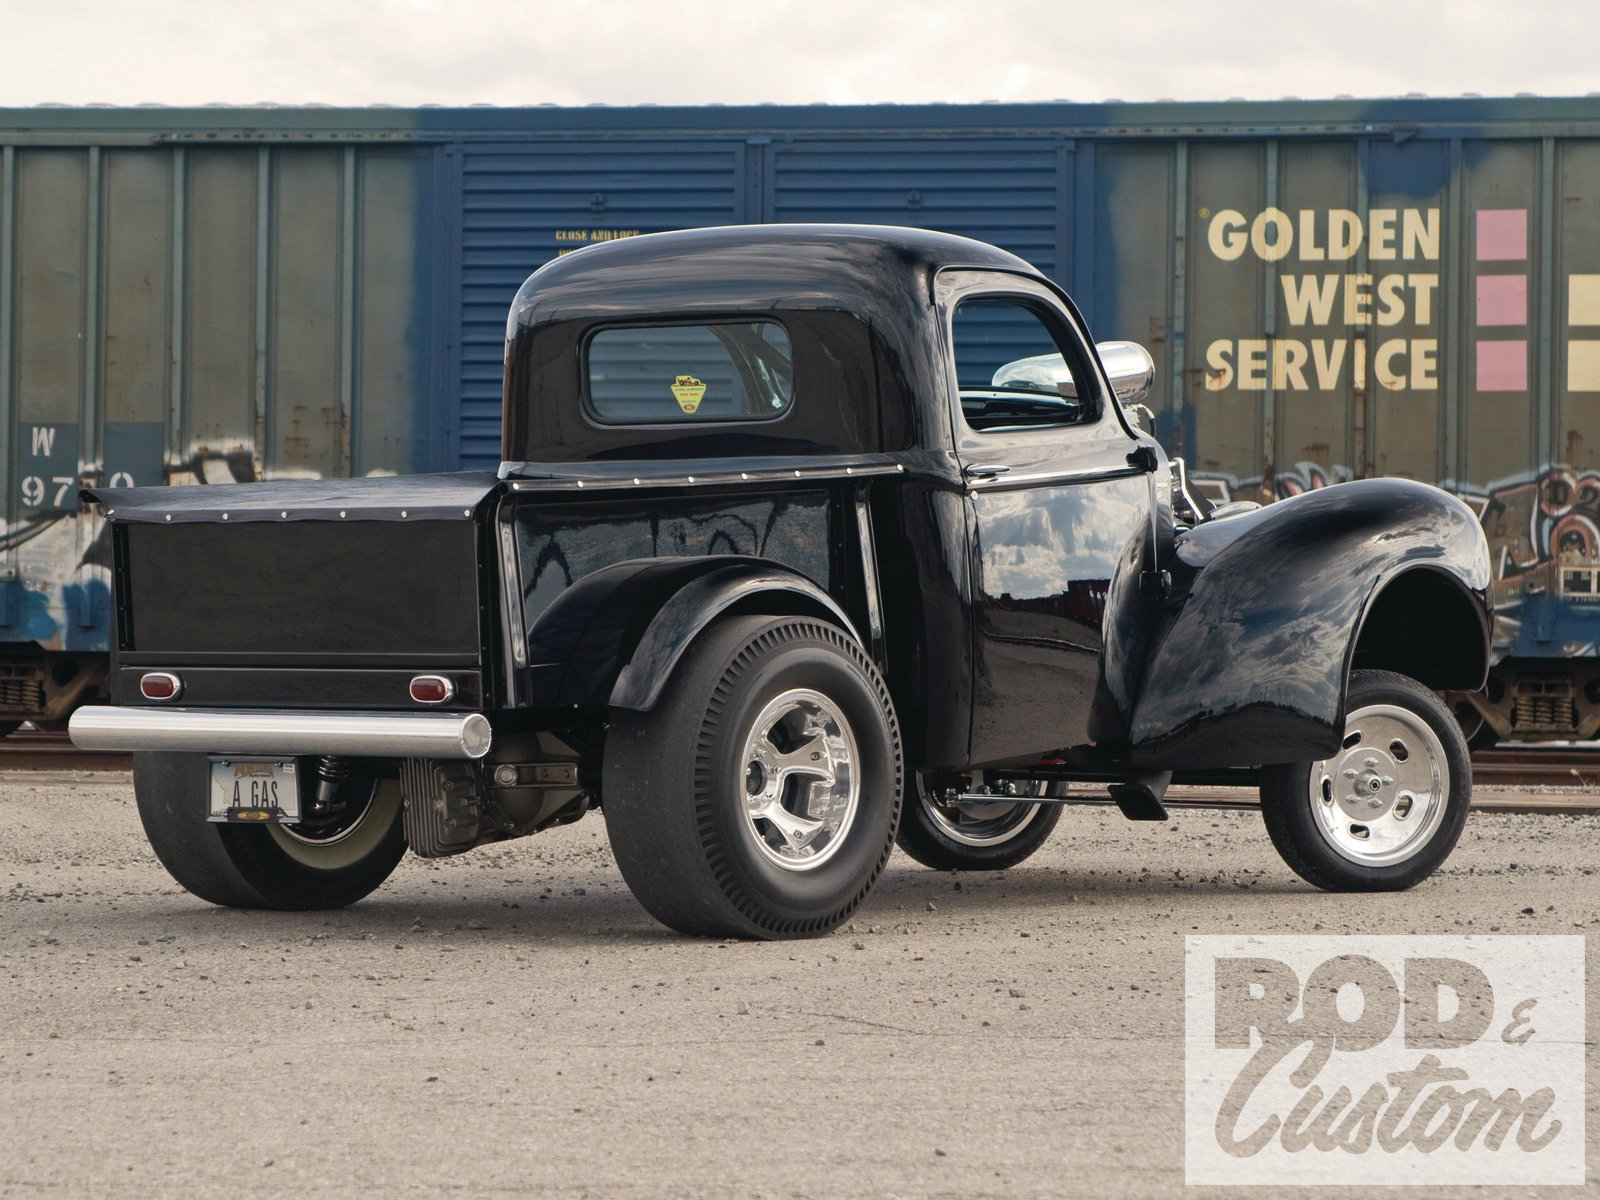 2015 Ford Truck Colors >> 1941 Willys Pickup Drag Dragster Gasser Race USA 1600x1200-02 wallpaper | 1600x1200 | 672734 ...